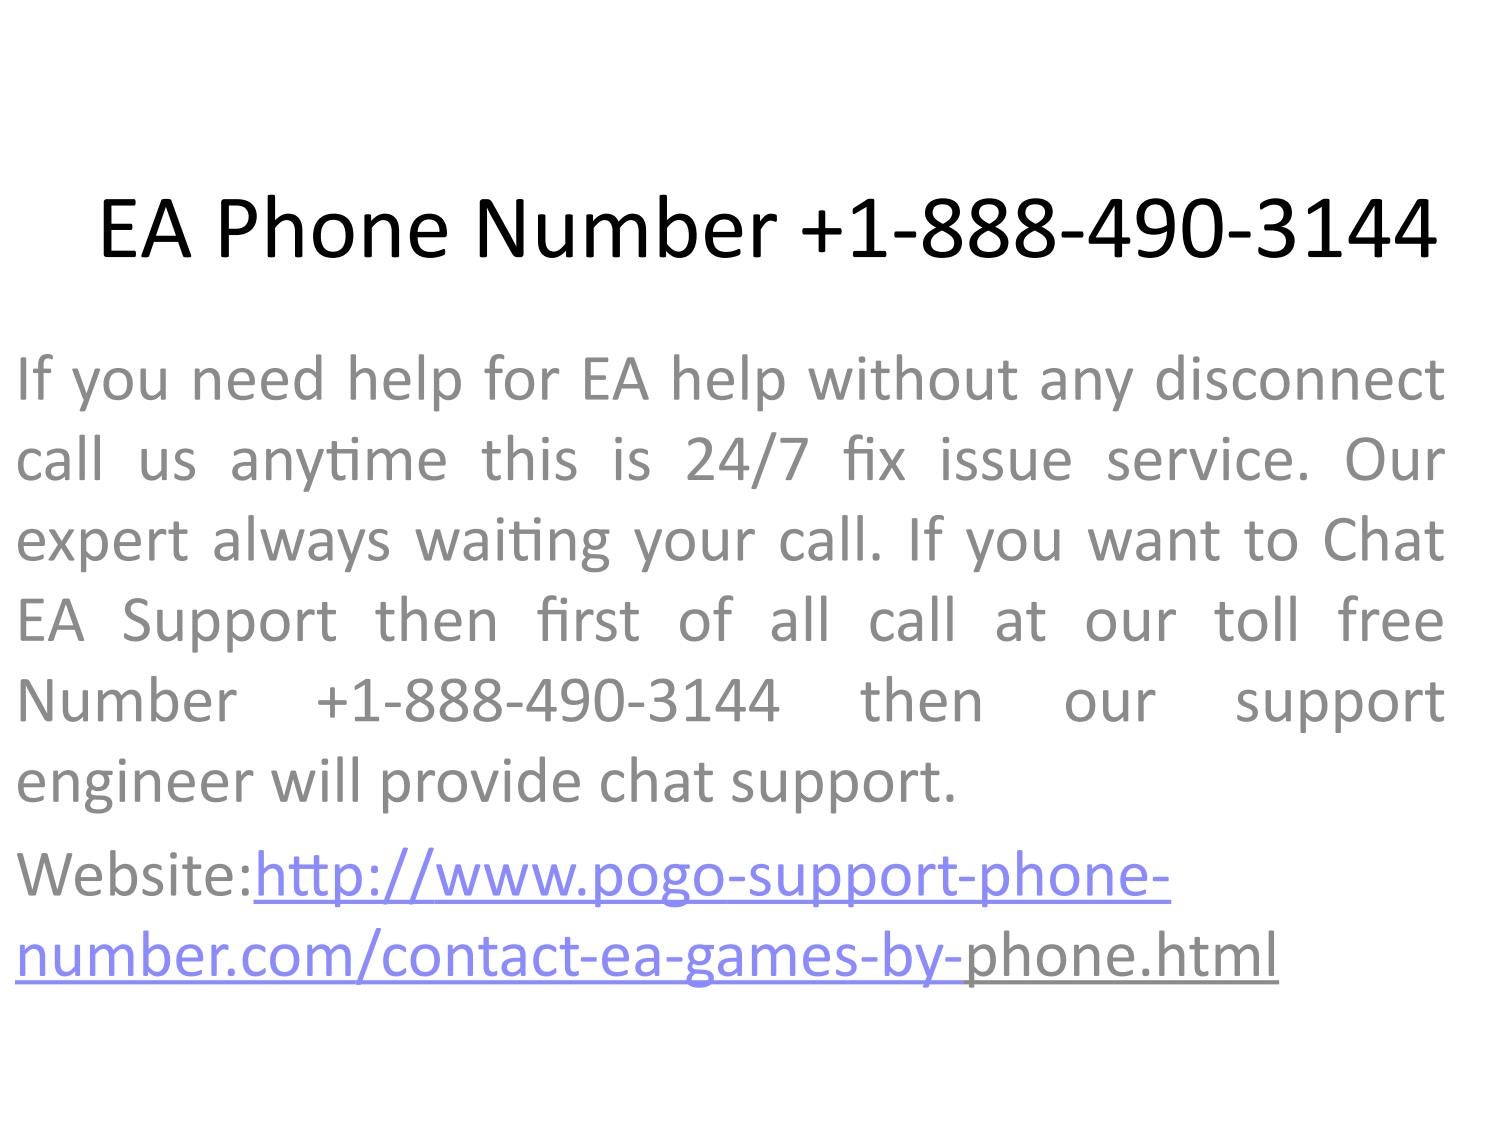 Ea phone number 1 888 490 3144 by pogosupport - issuu